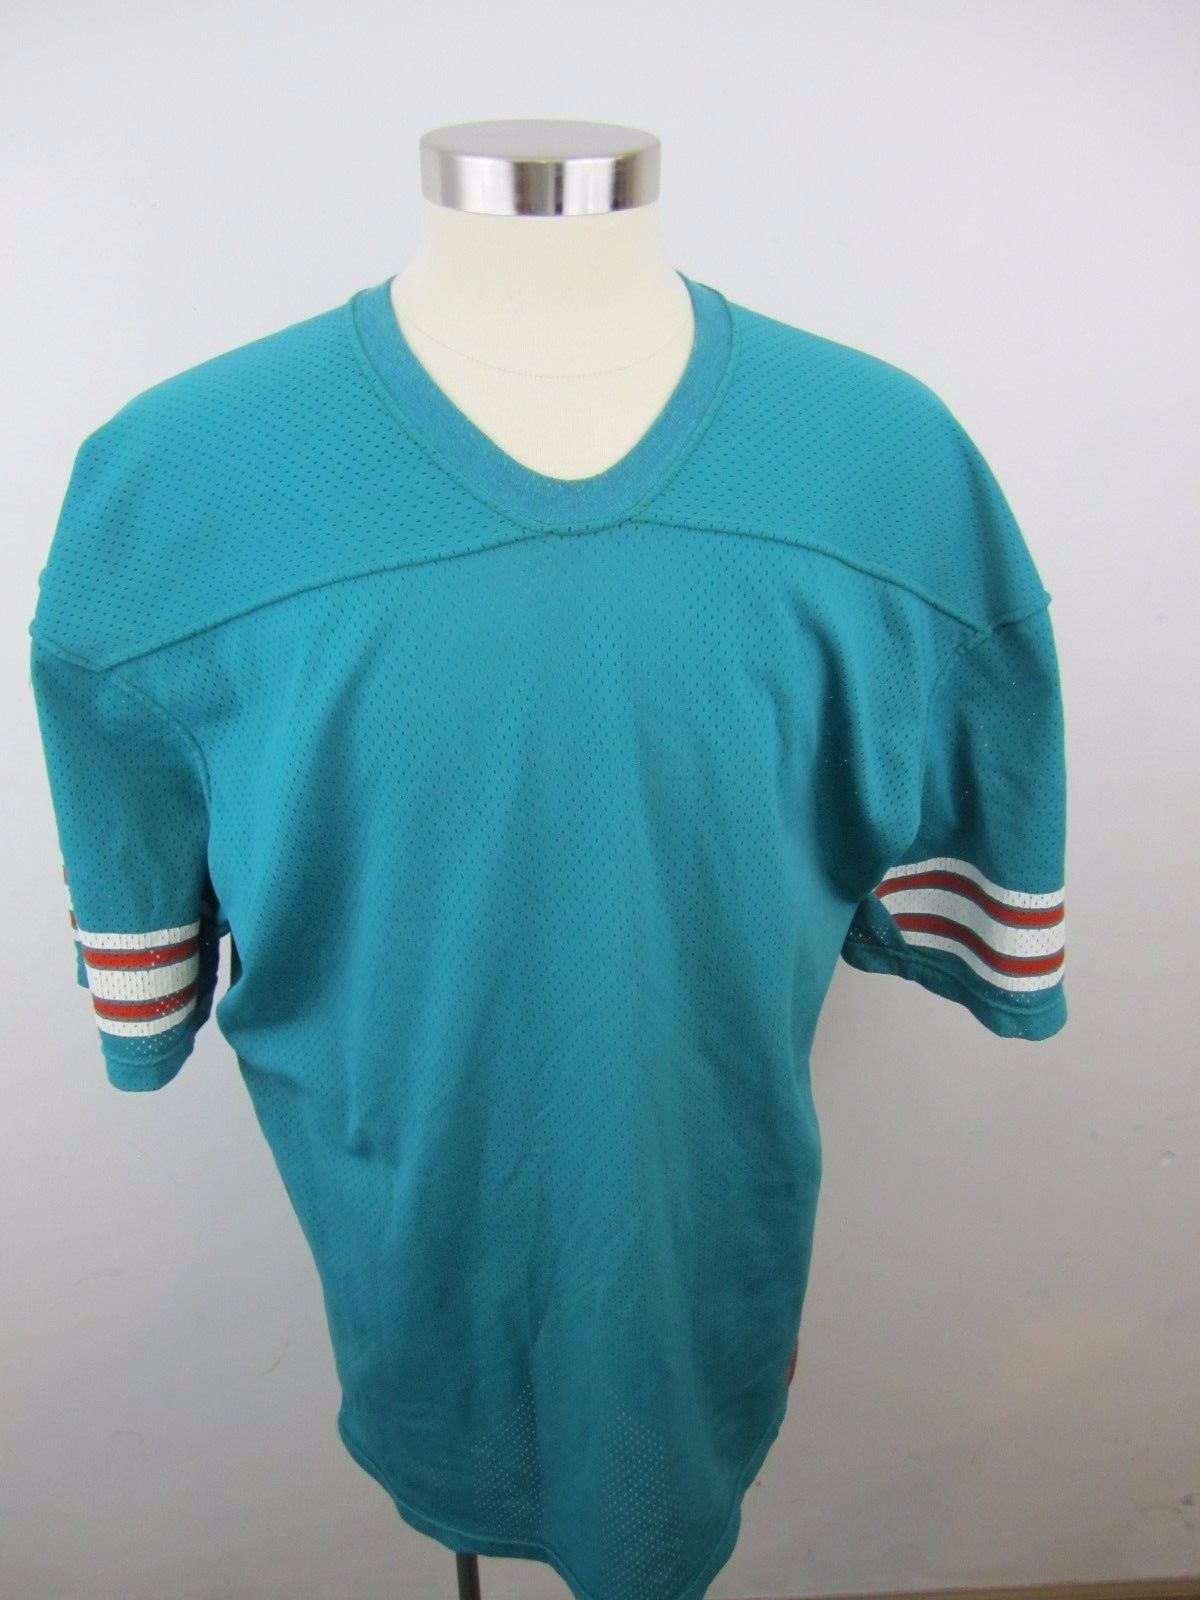 Vintage Rawlings Nfl Miami Dolphins Jersey and 26 similar items